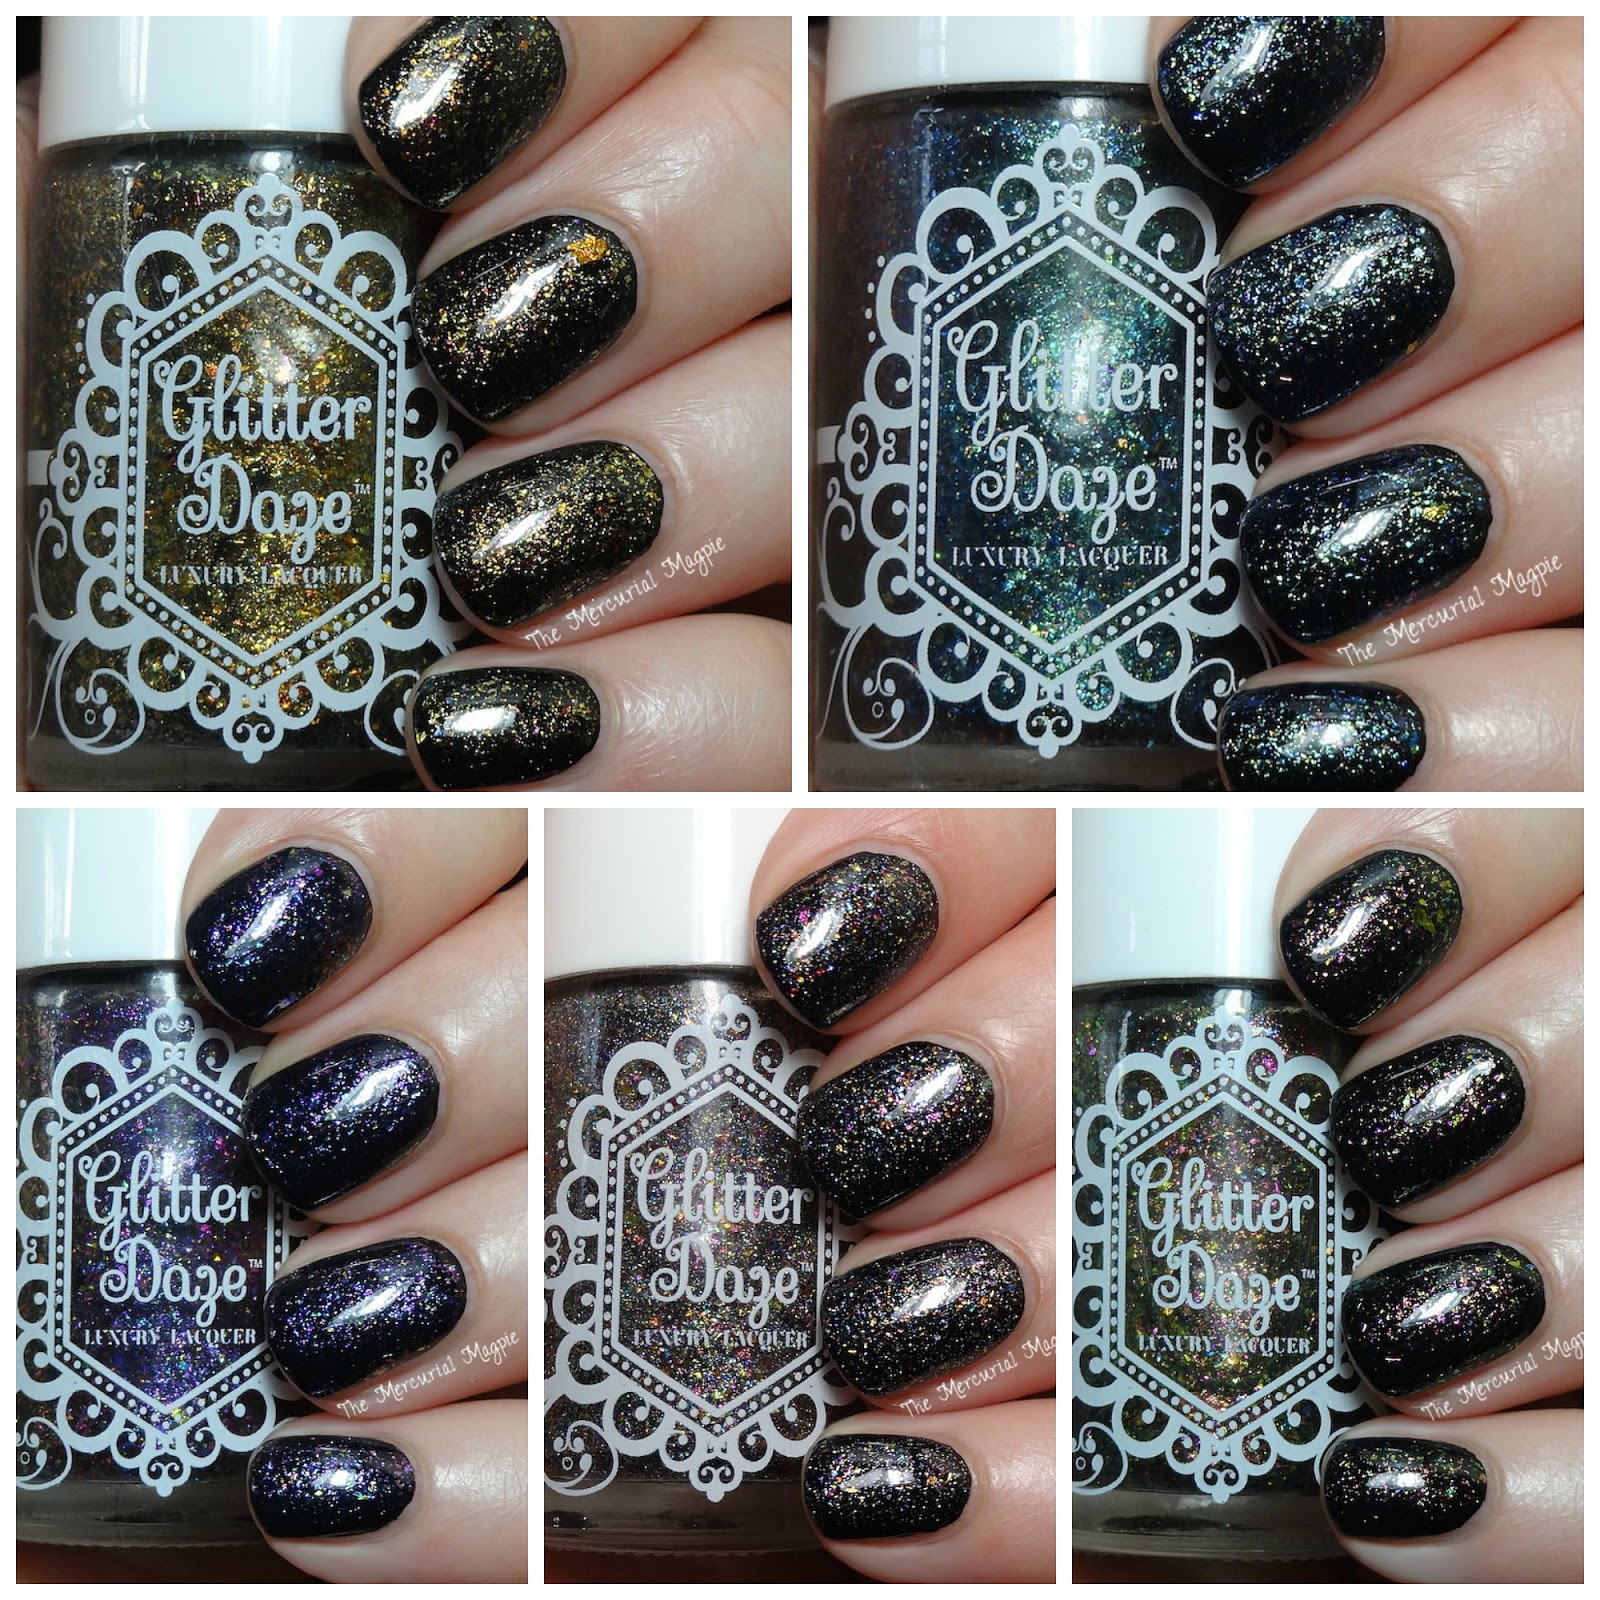 Glitterdaze The Mythical Collection Swatches & Review